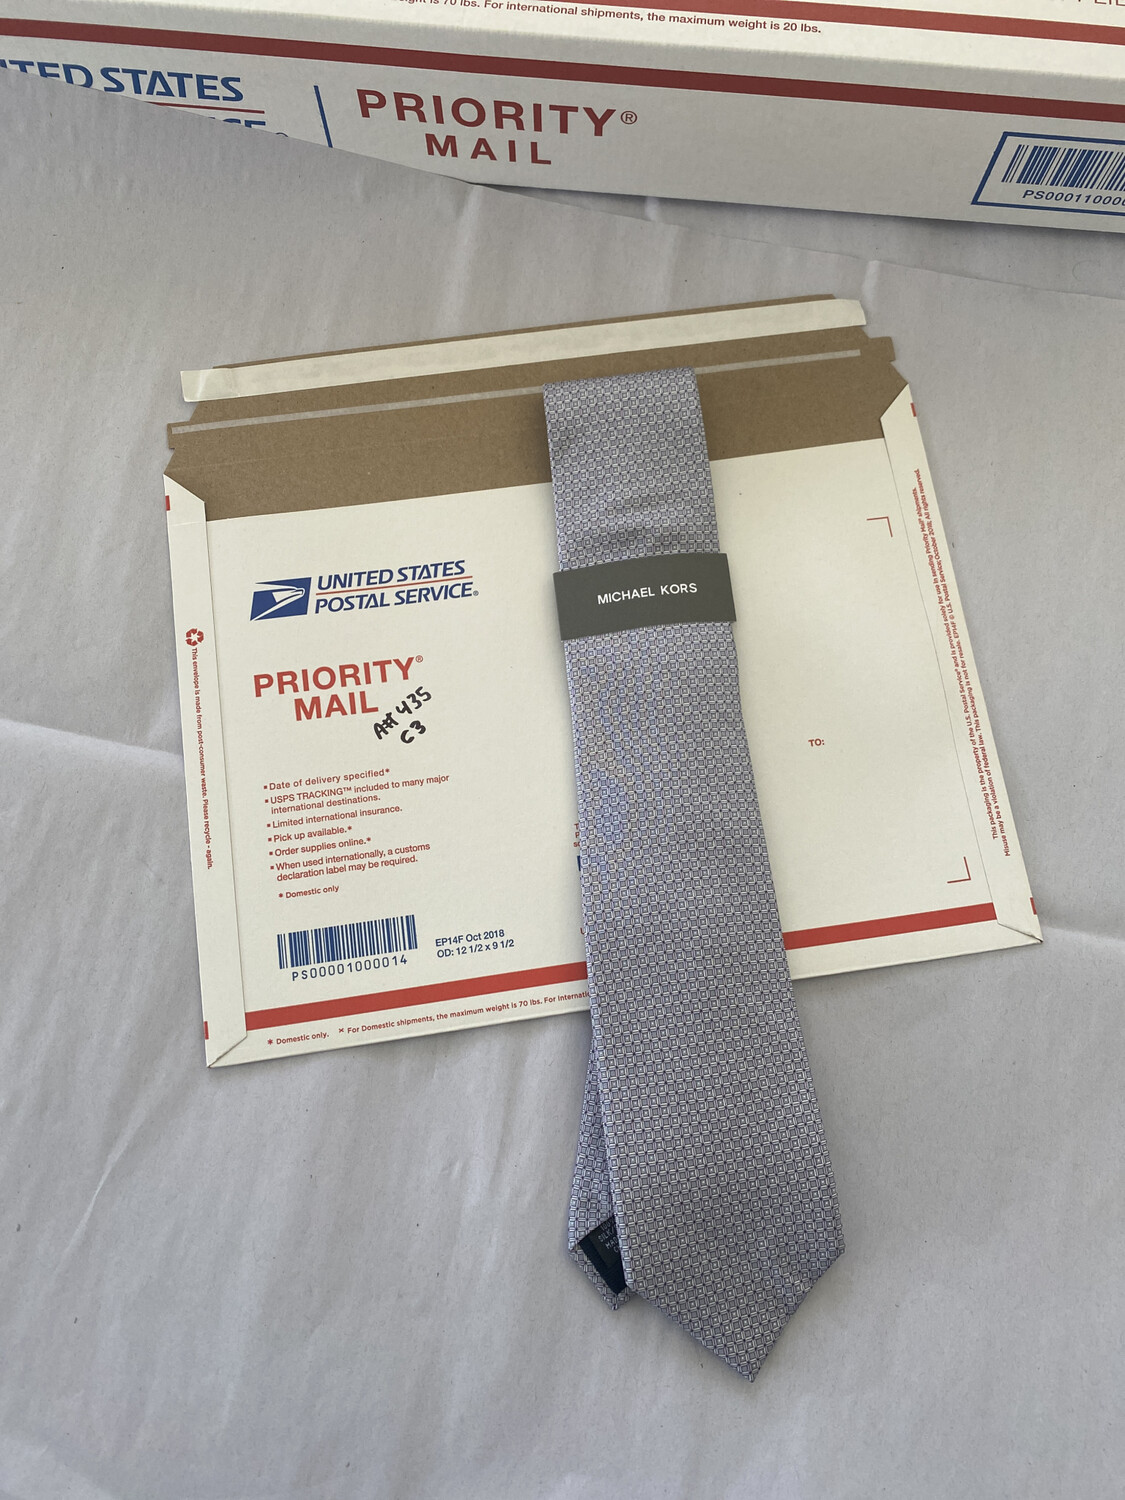 Michael Kors Necktie Silver And Purple New With Tags Free Shipping A #435 Best Offer original Retail $69.50